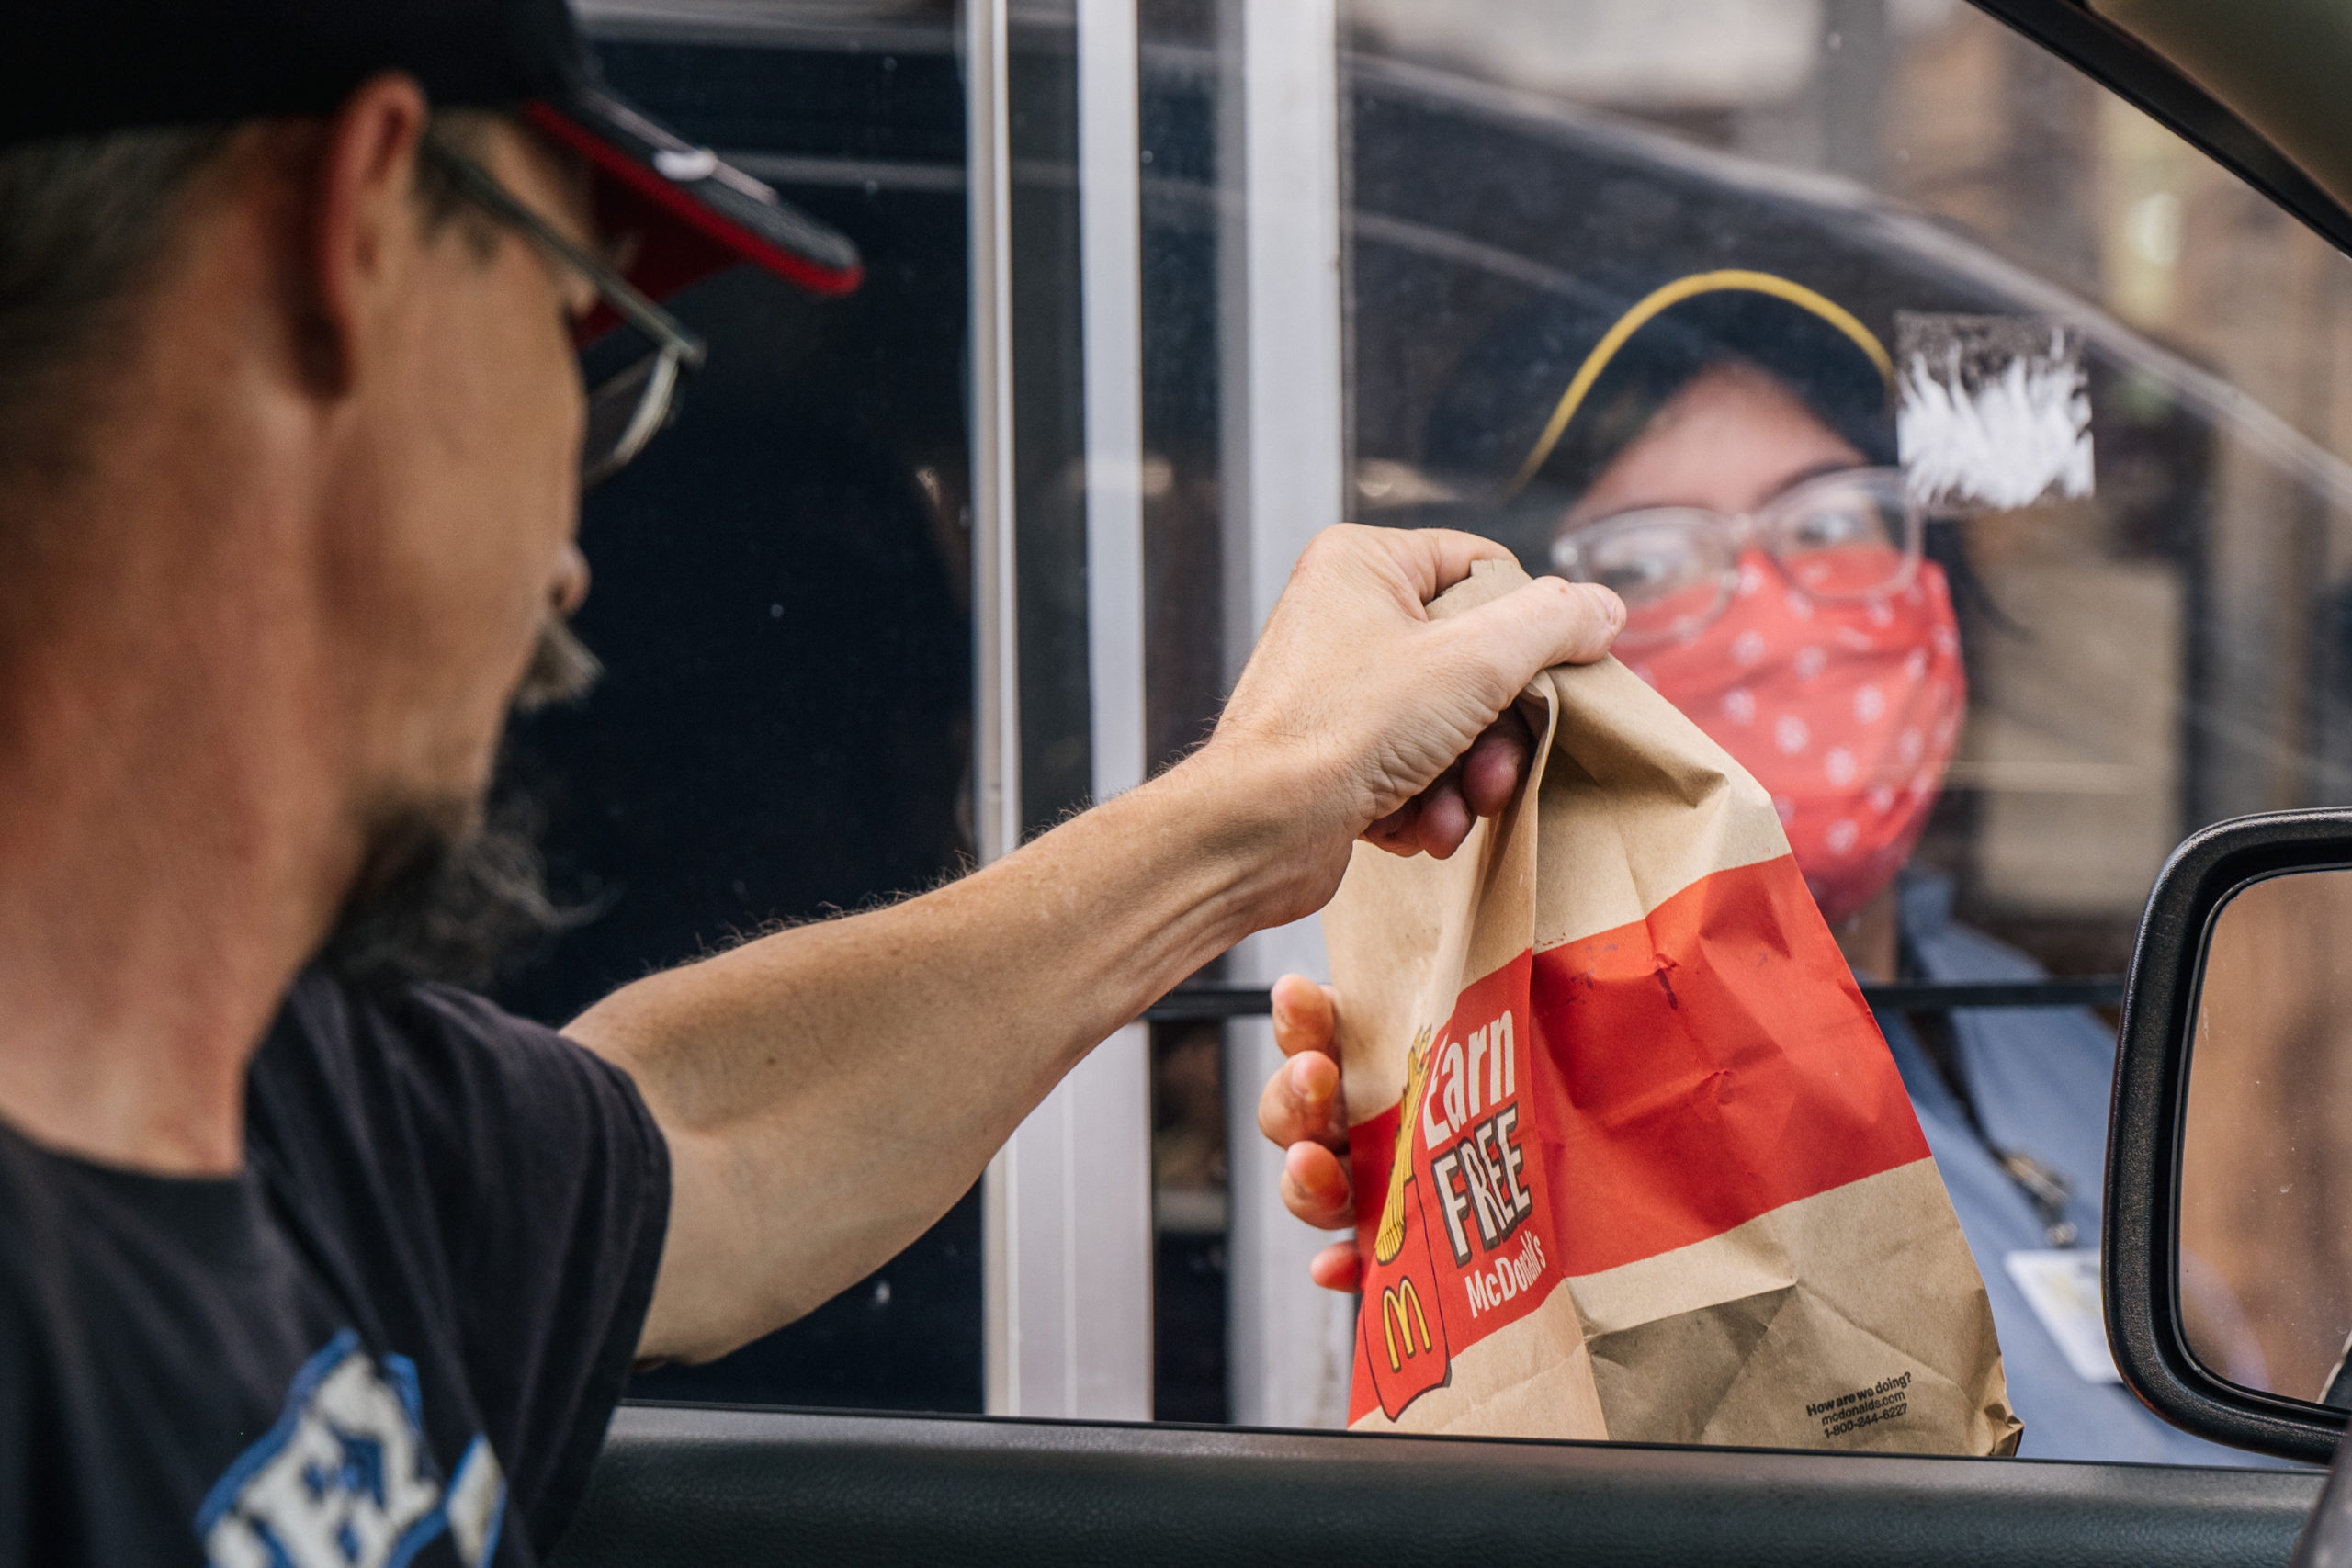 A customer receives his food in a McDonald's drive-thru on July 28, 2021 in Houston, Texas. (Photo by Brandon Bell/Getty Images)